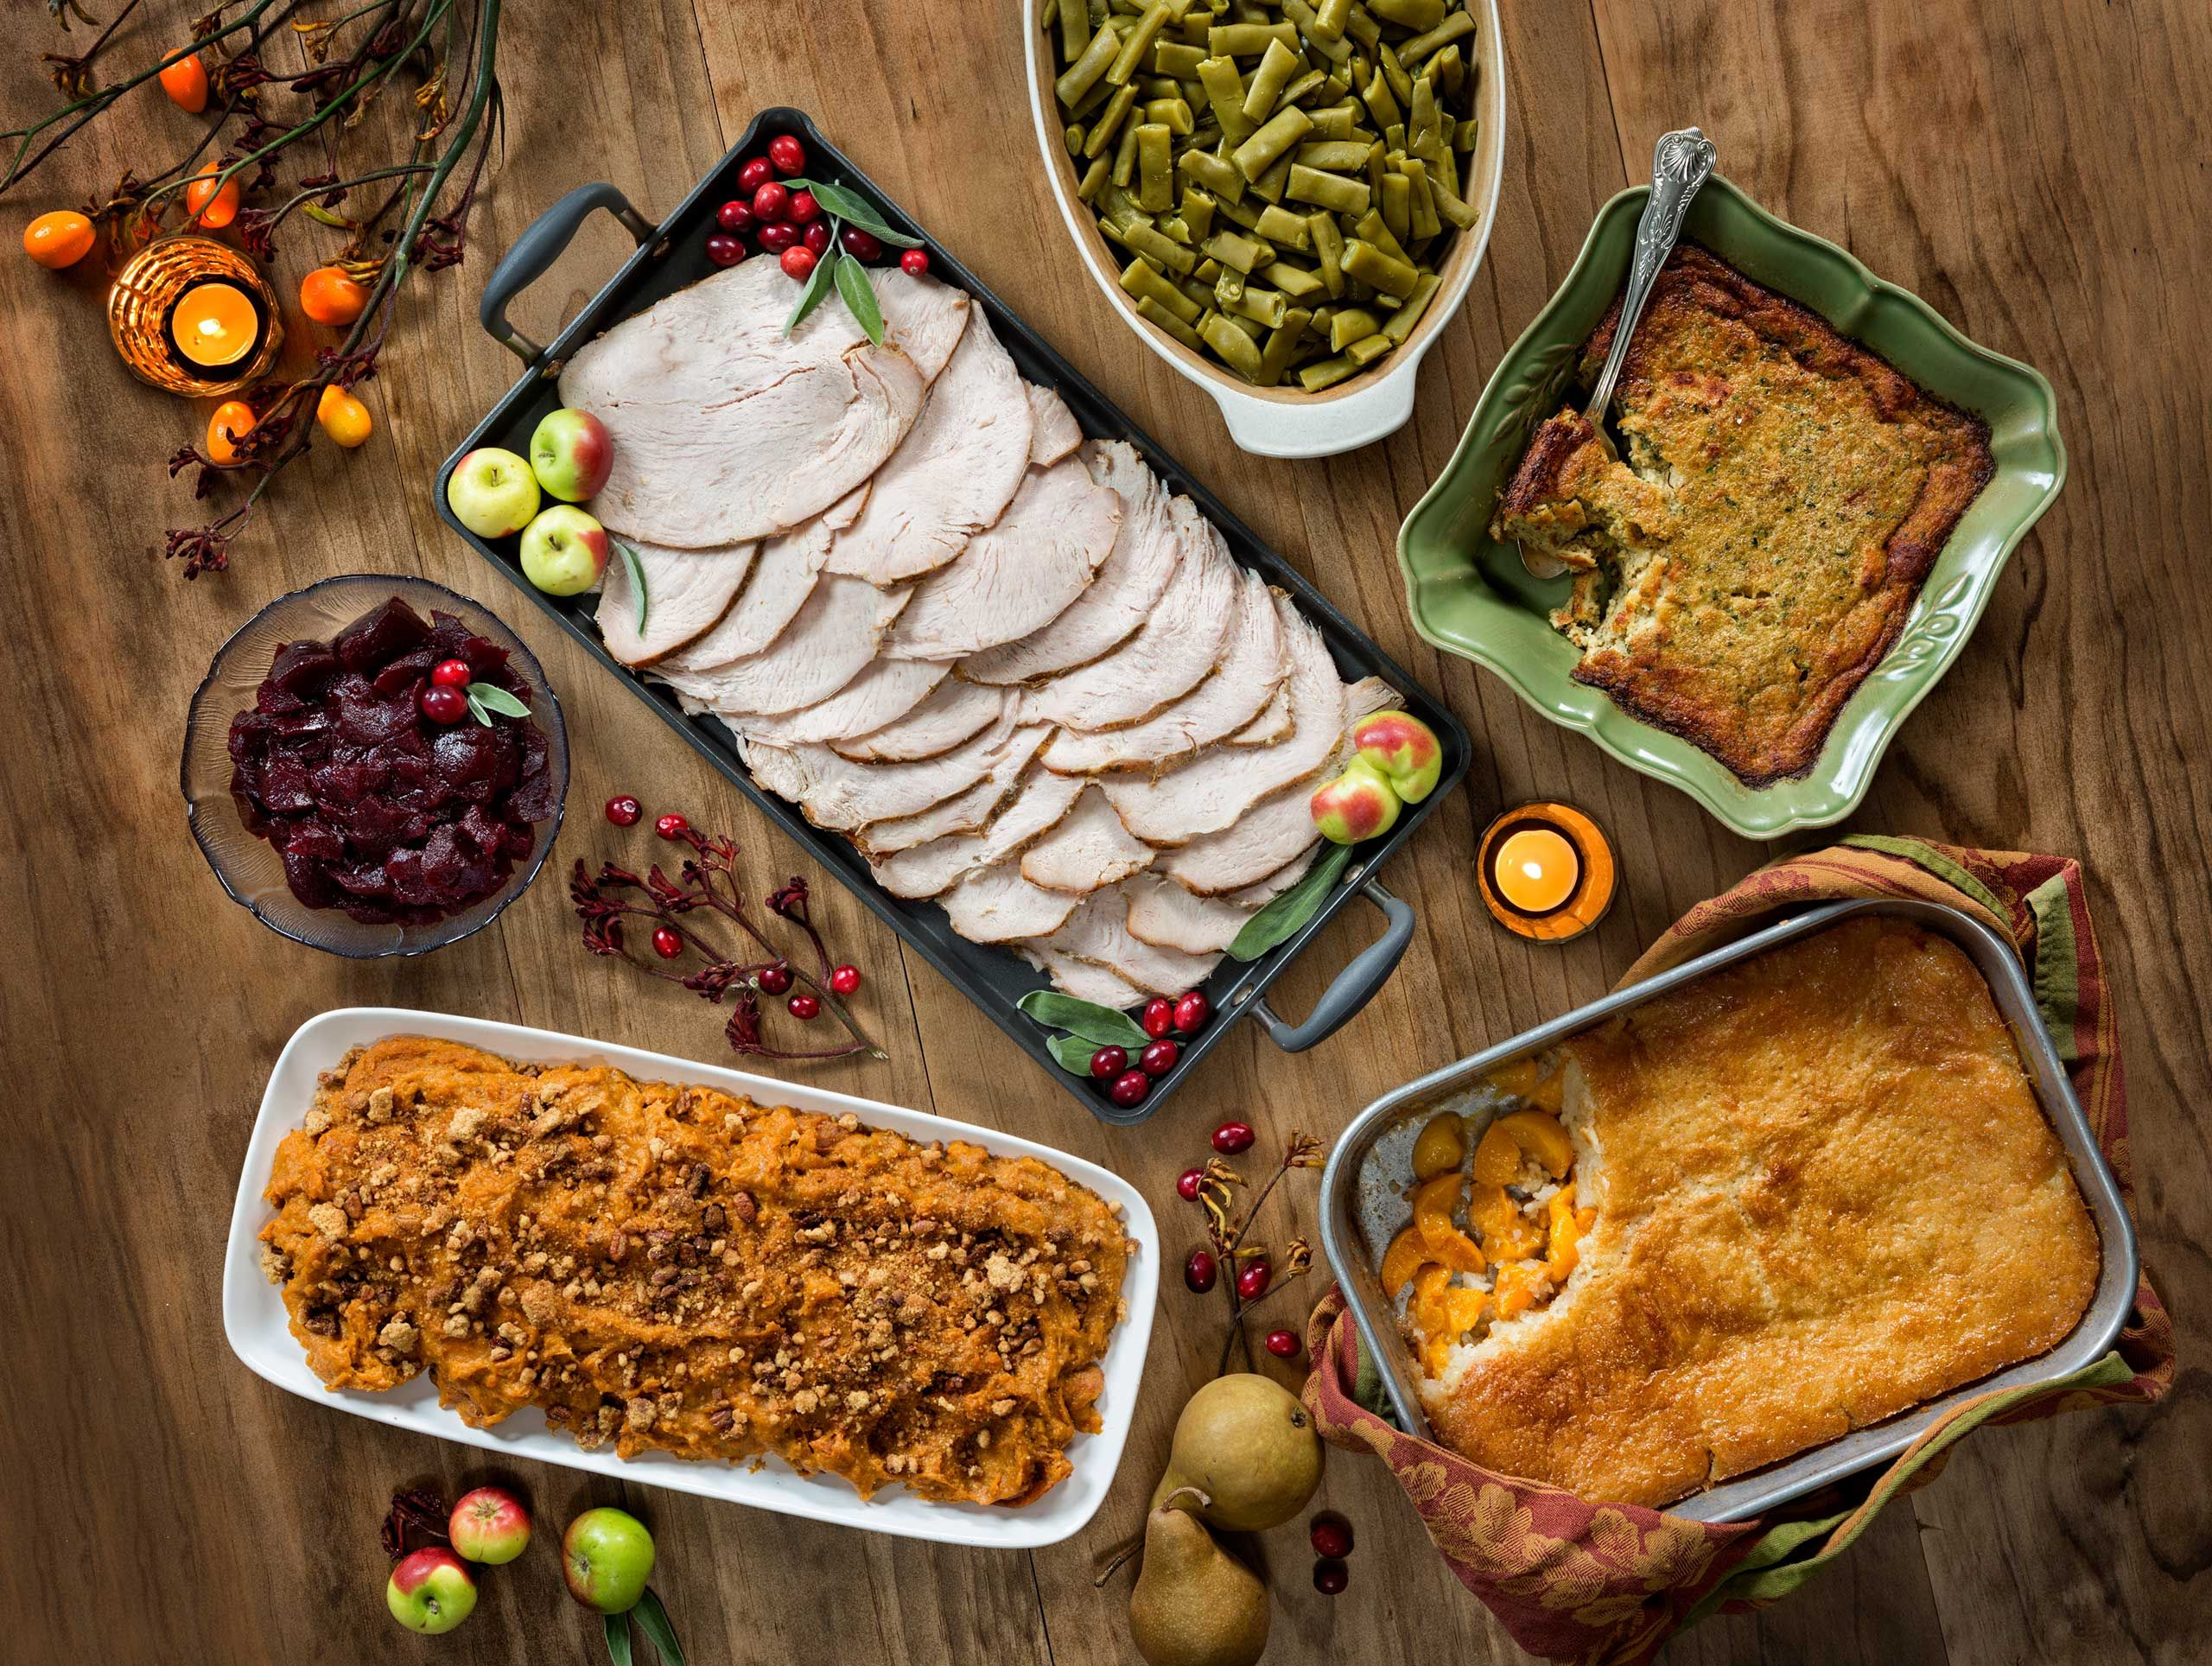 Fred's Market Thanksgiving by Florida commercial food  photographer